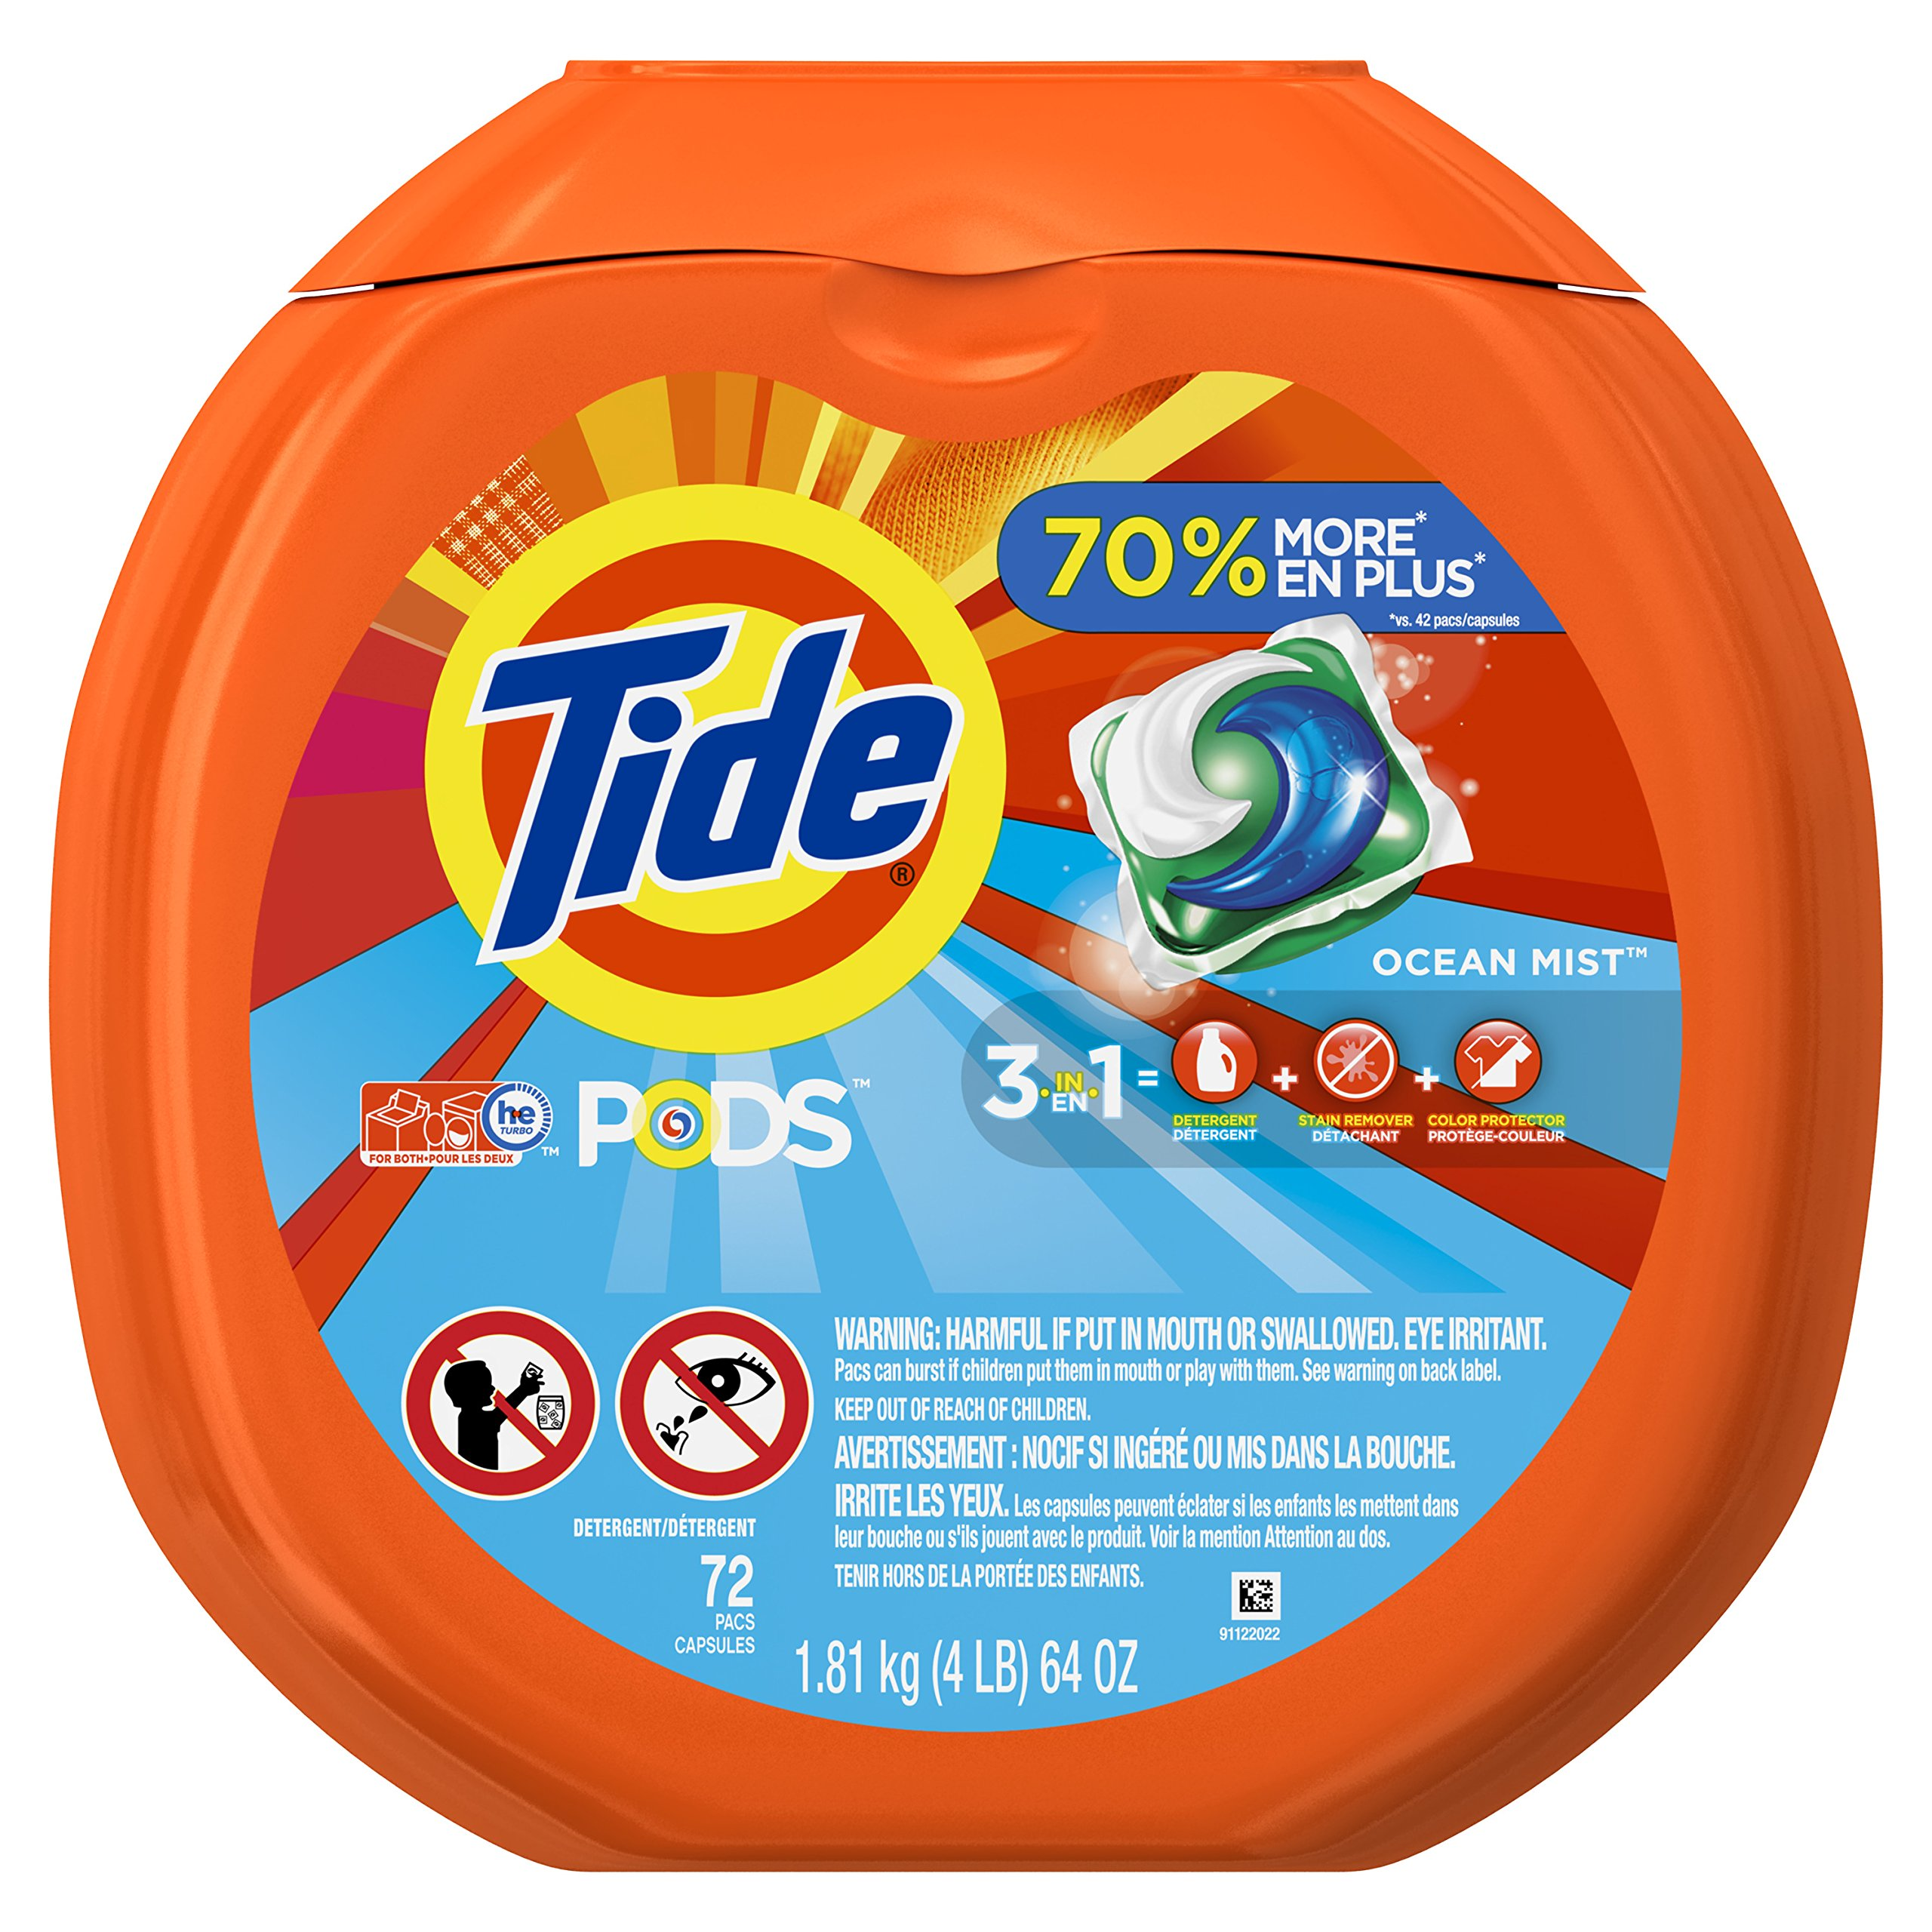 Tide PODS 3 in 1 HE Turbo Laundry Detergent Pacs, Ocean Mist Scent, 72